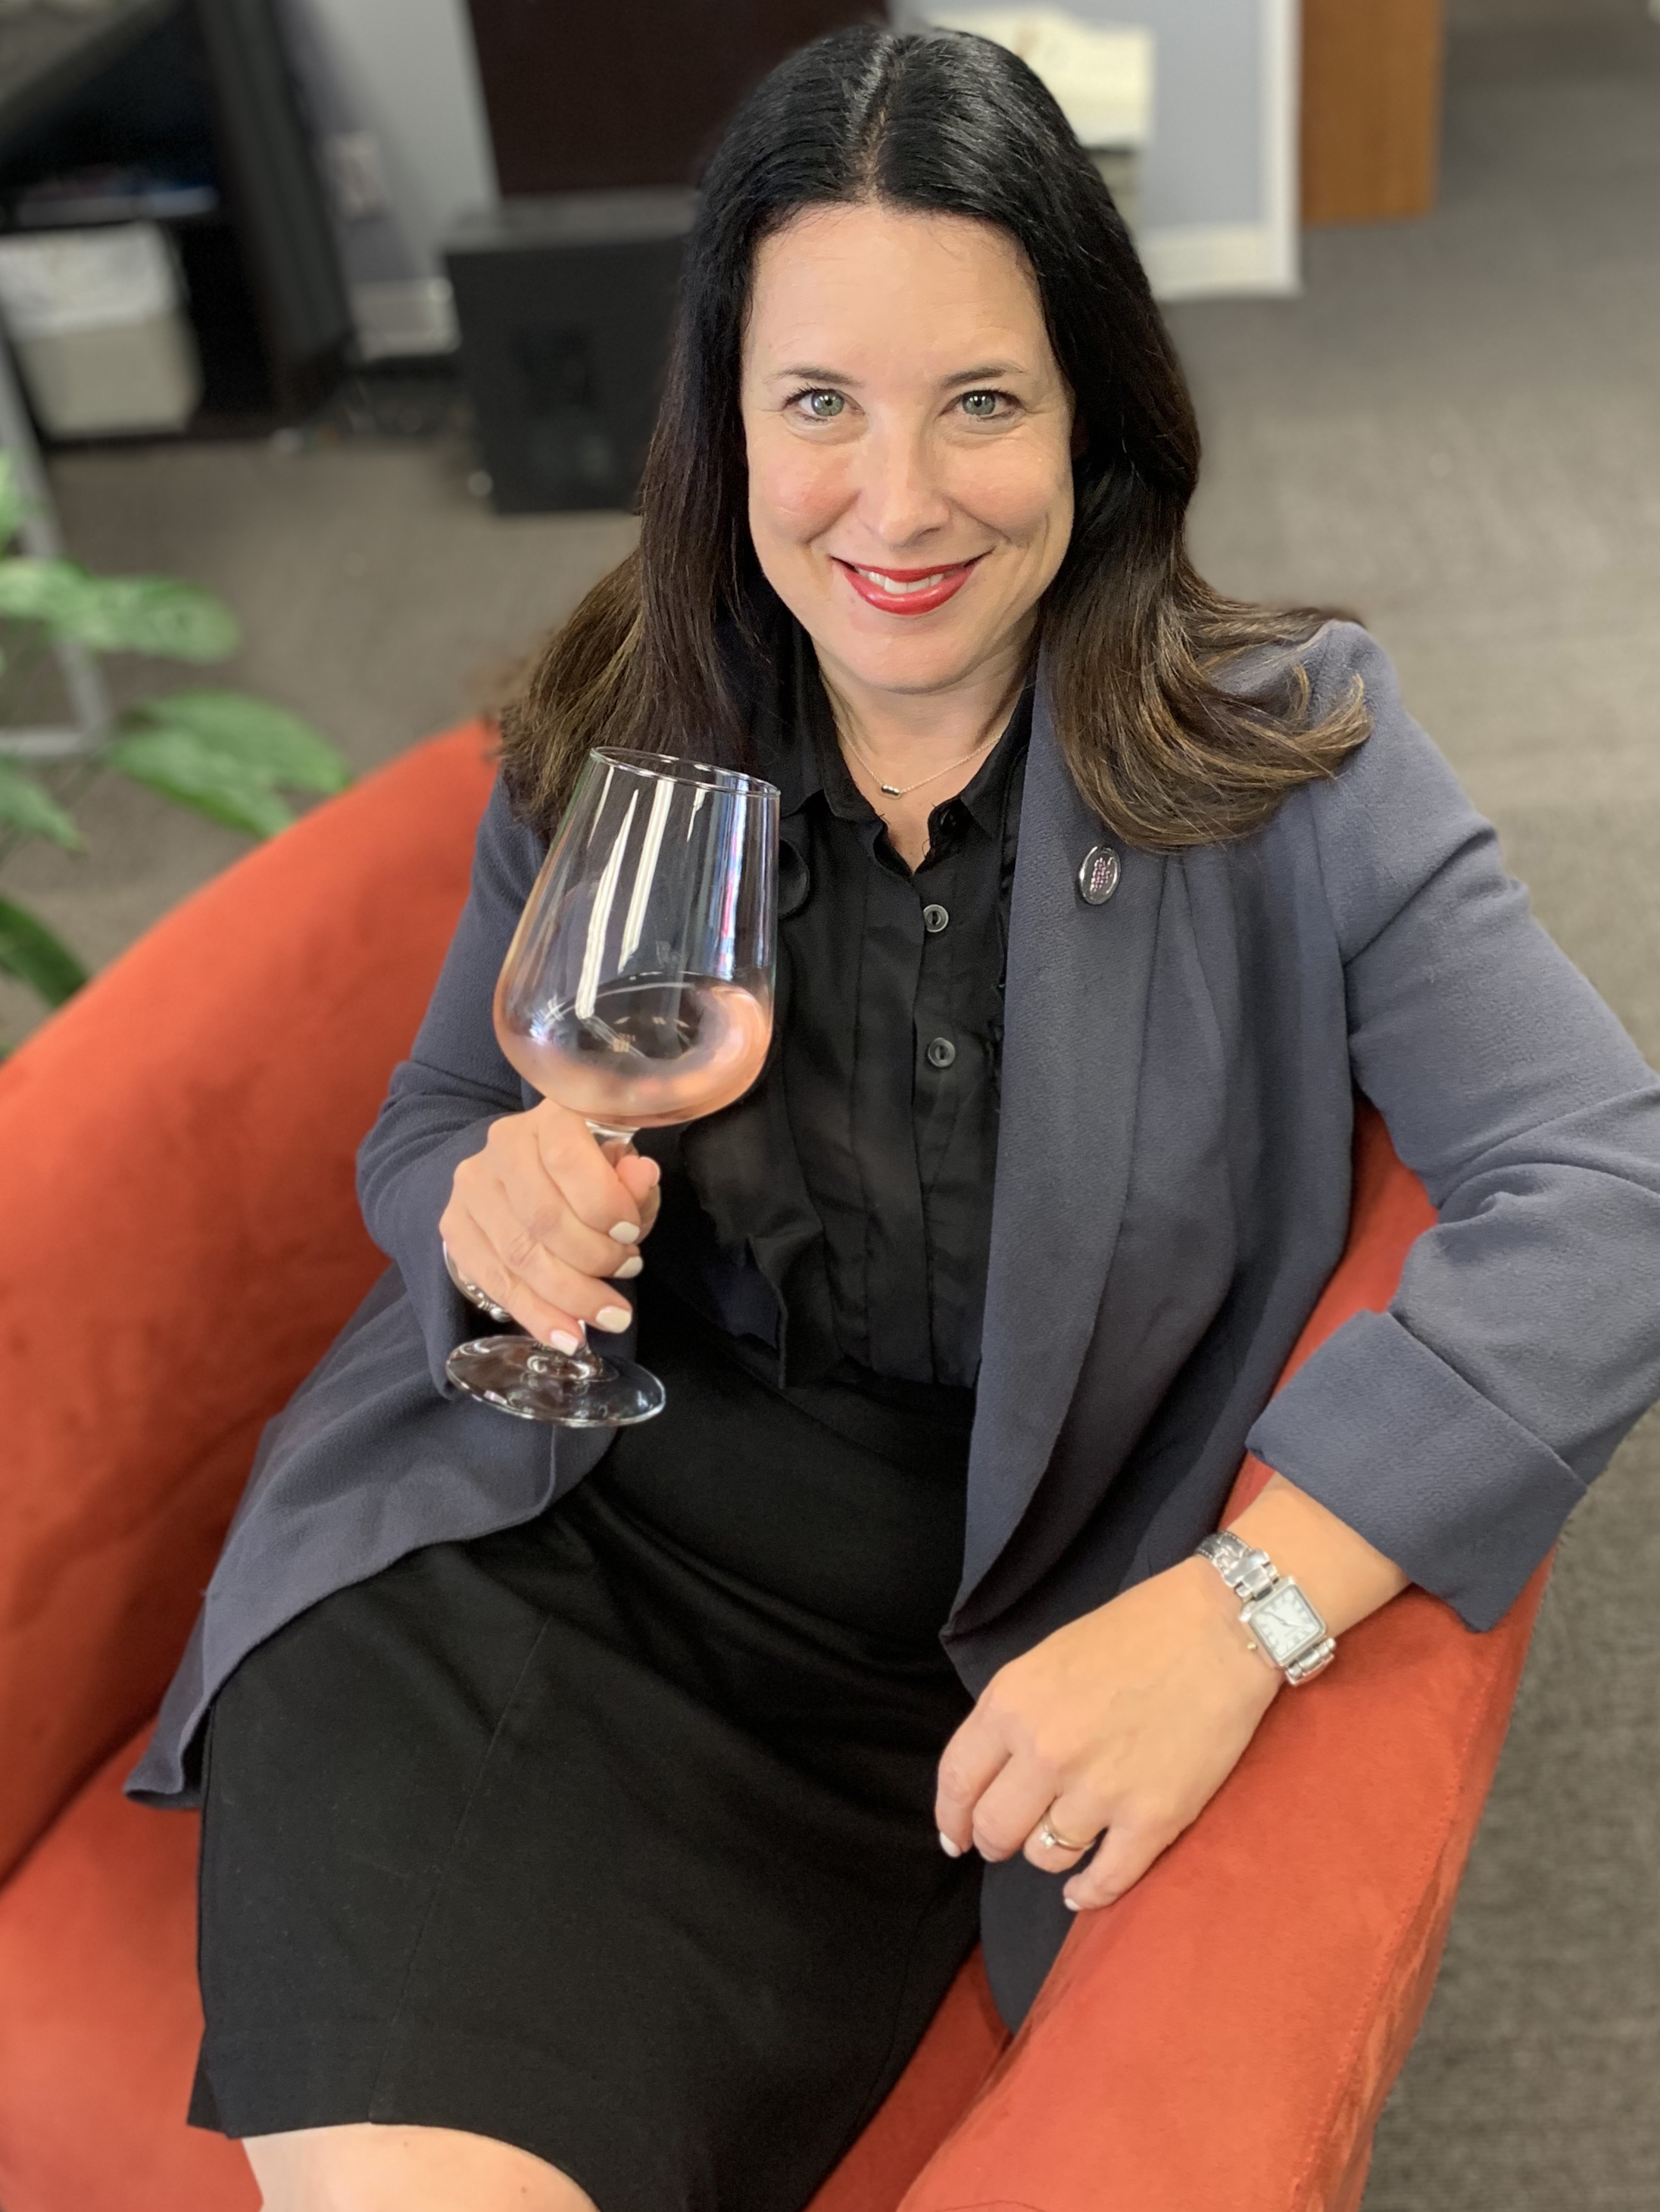 Lesley Brown is set to head HQ Wine & Spirits as vice president sales and marketing